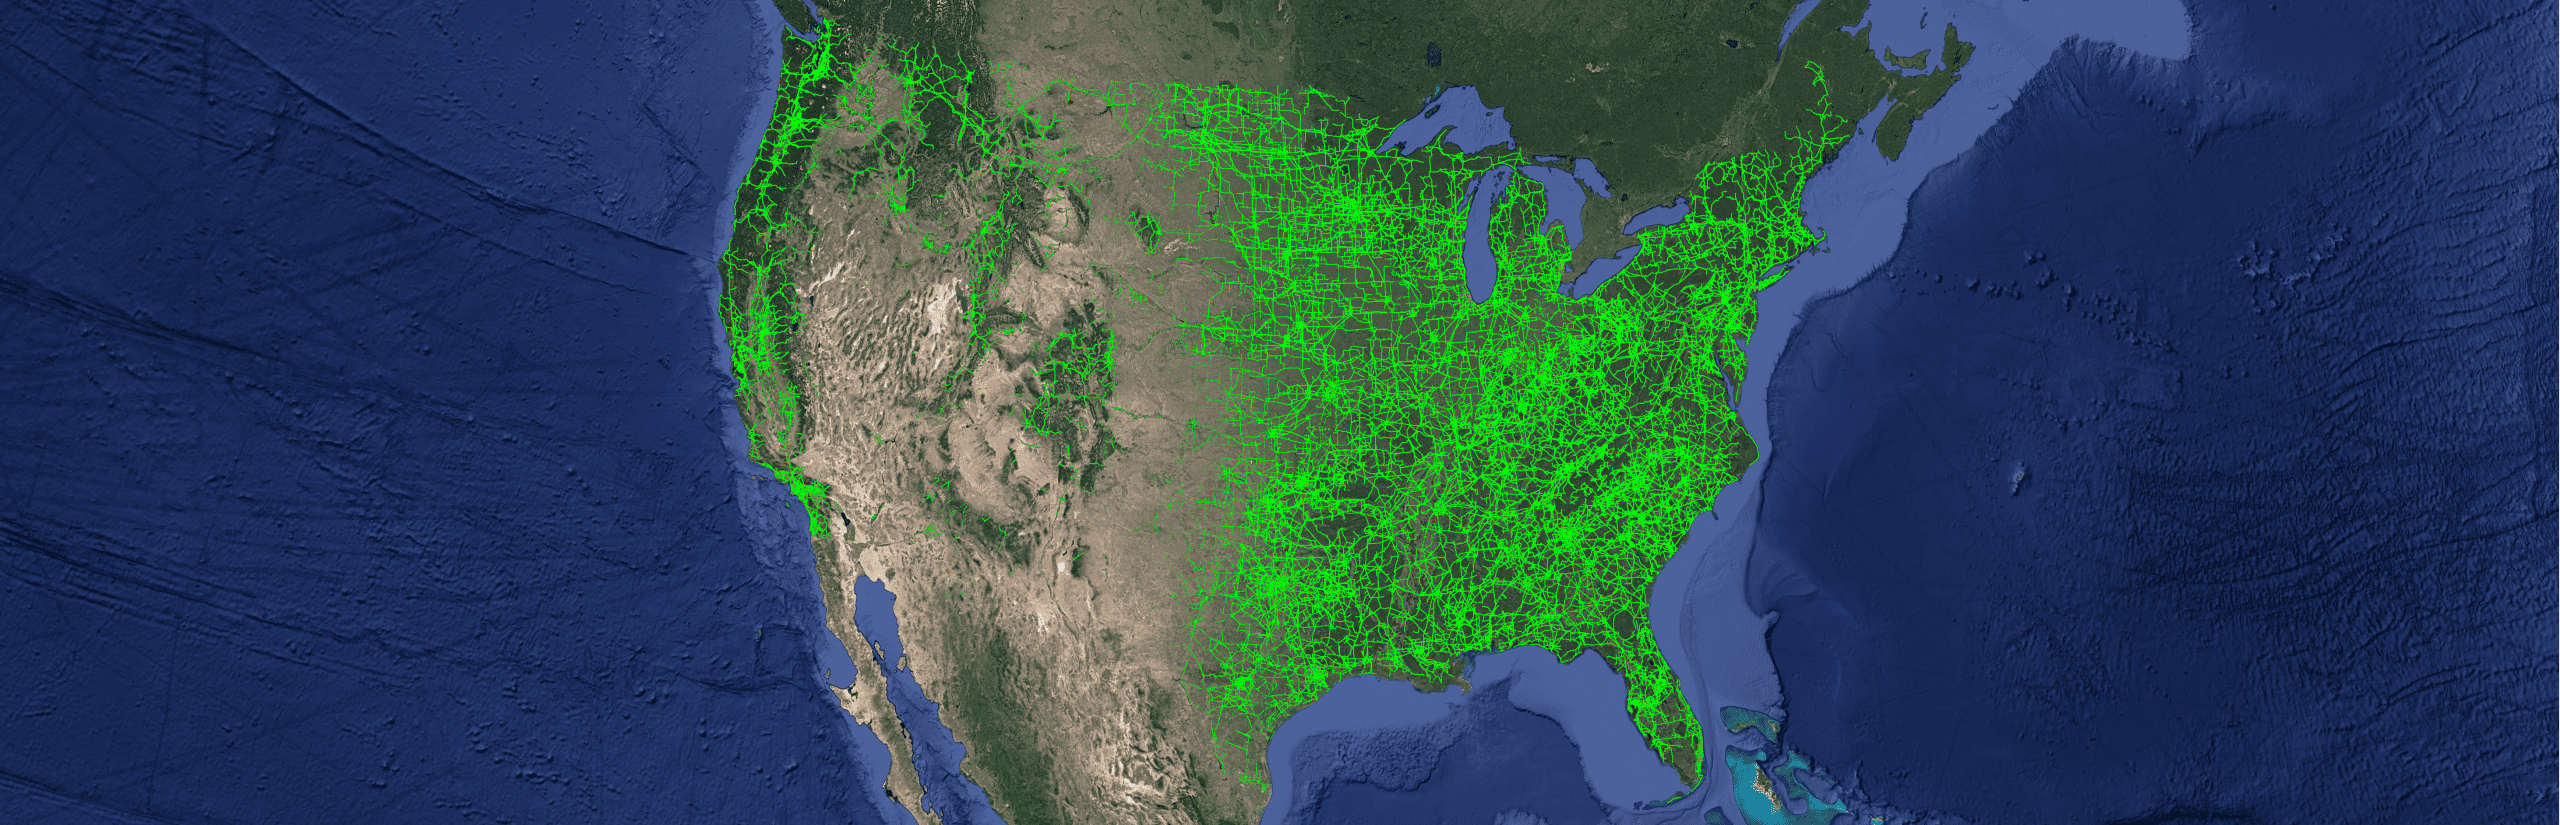 US transmission power grid on map